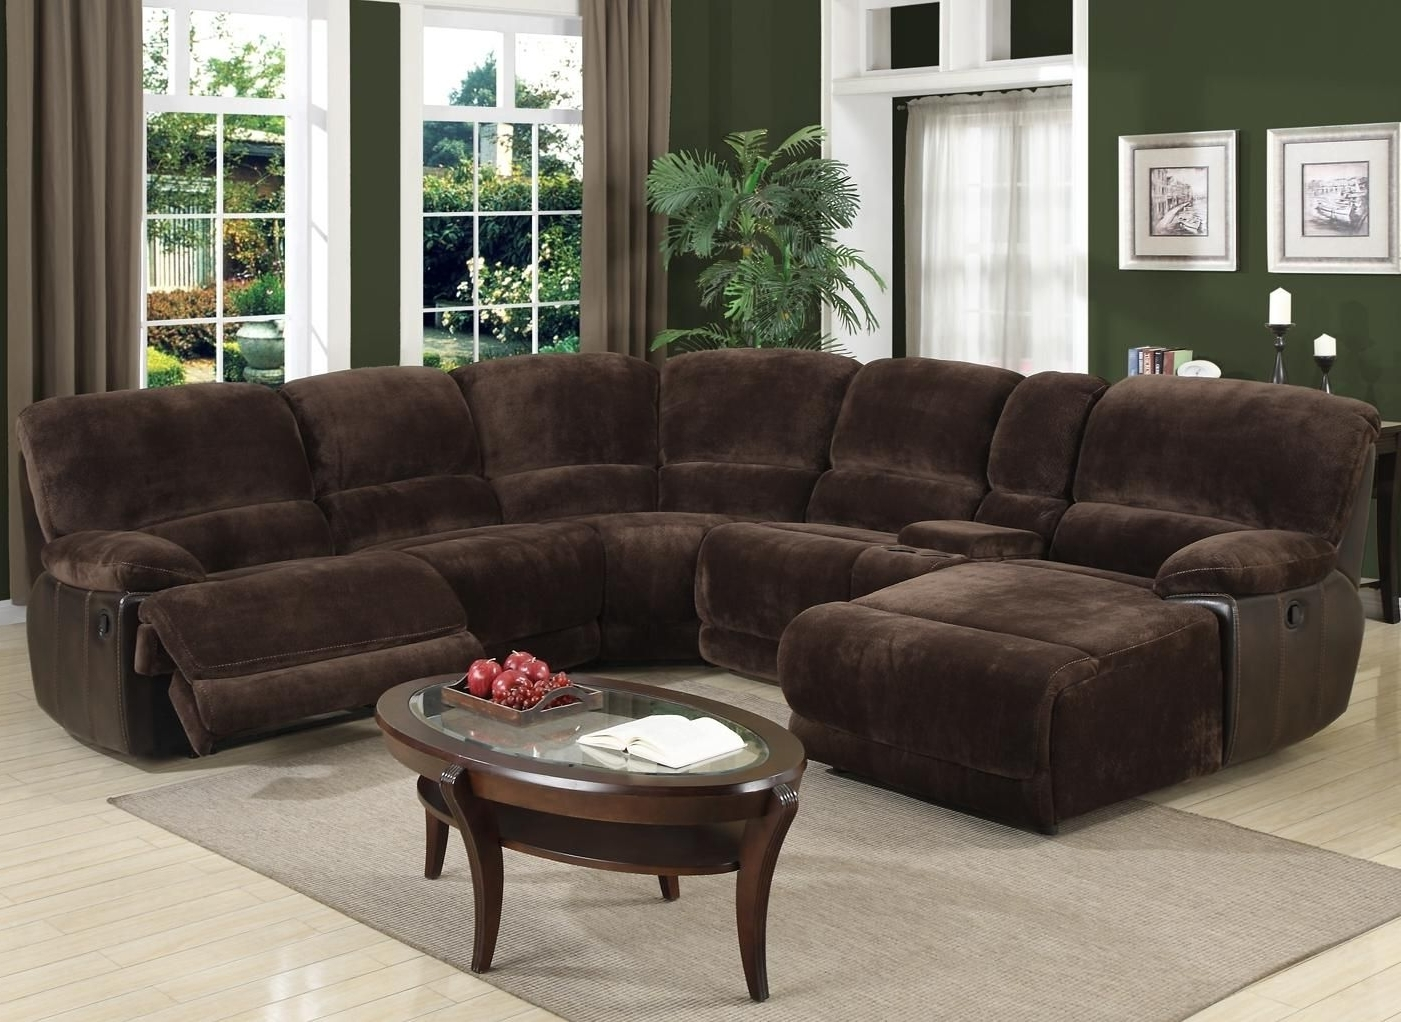 Trendy Motion Masters 3460 Casual Raf Chaise Reclining Sectional – Reeds Within Sams Club Sectional Sofas (View 19 of 20)